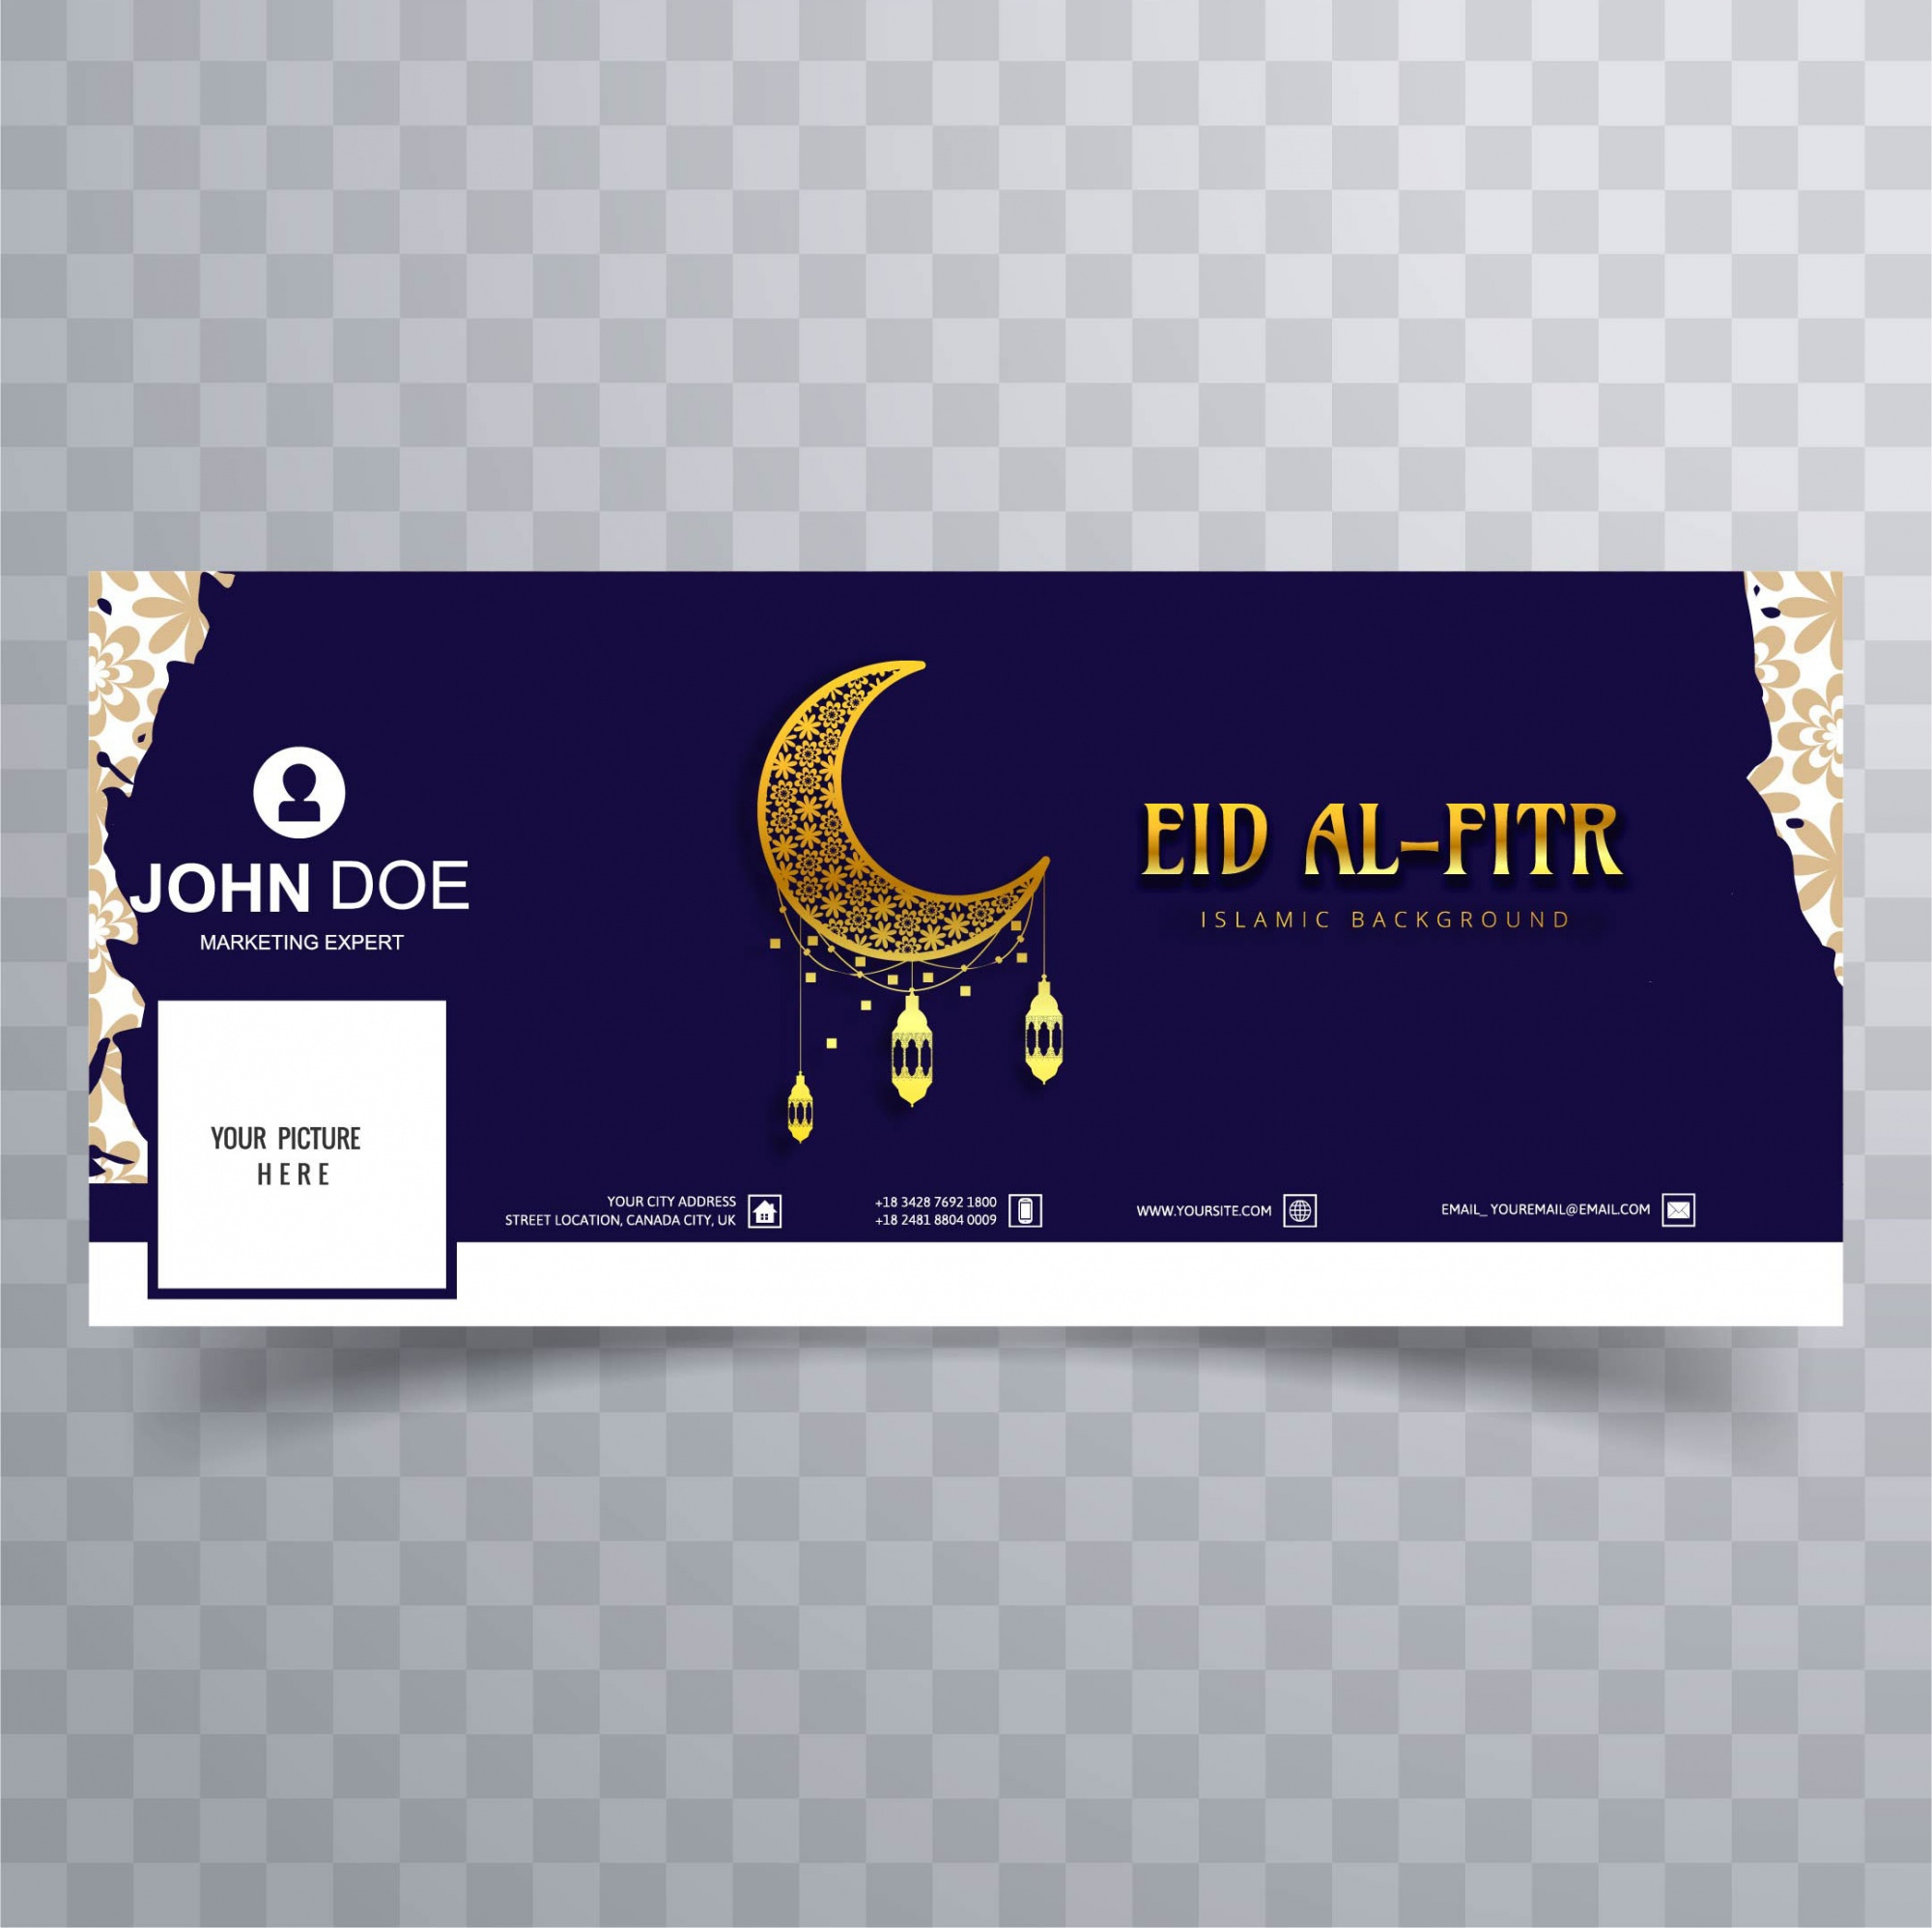 Eid Al Fitr capa do facebook